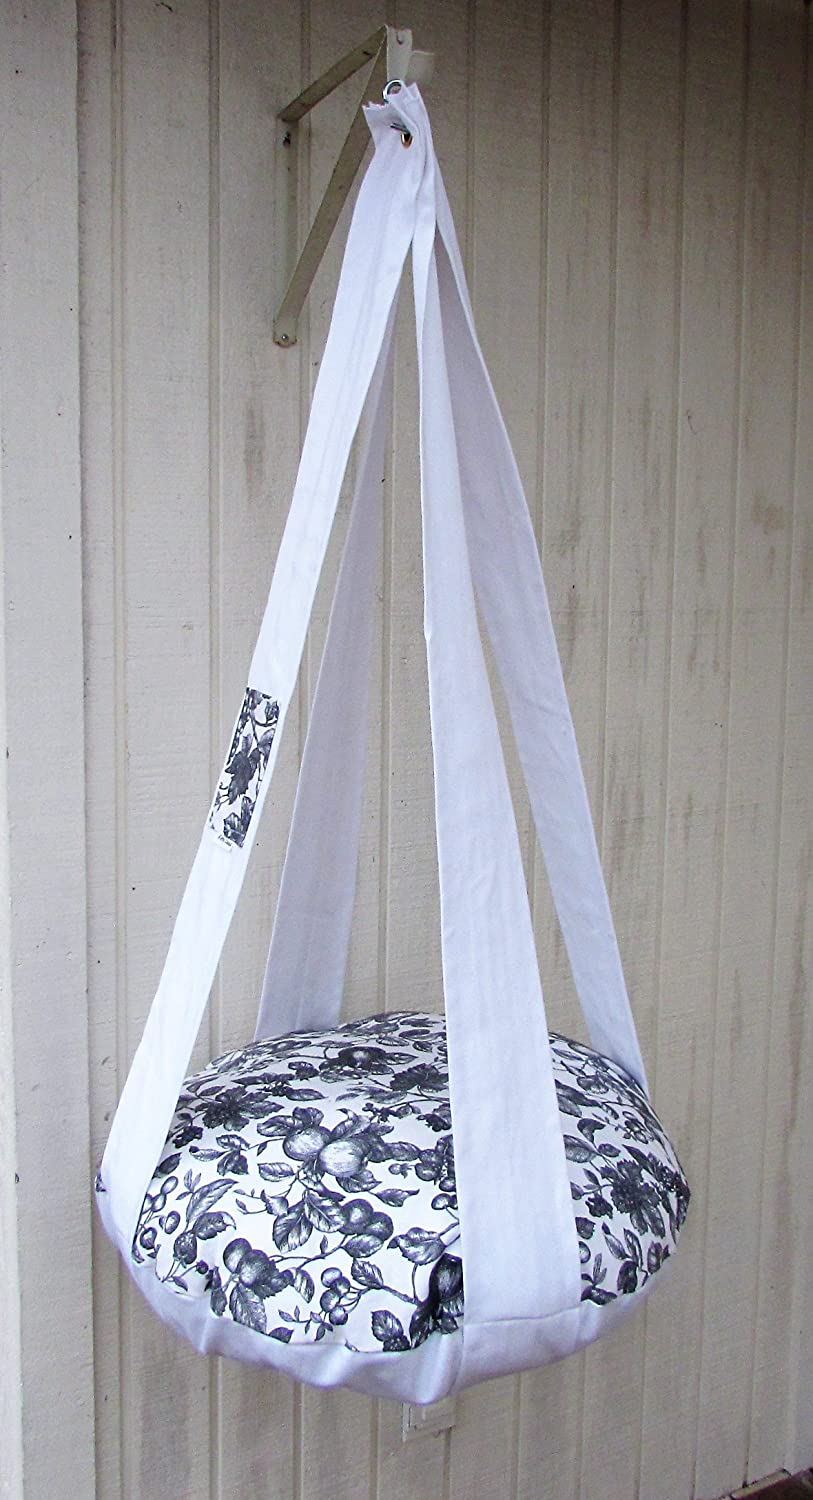 Cat Bed Brand Cheap Sale Venue Black White Fruit Kitty Single Max 75% OFF Hanging Cloud